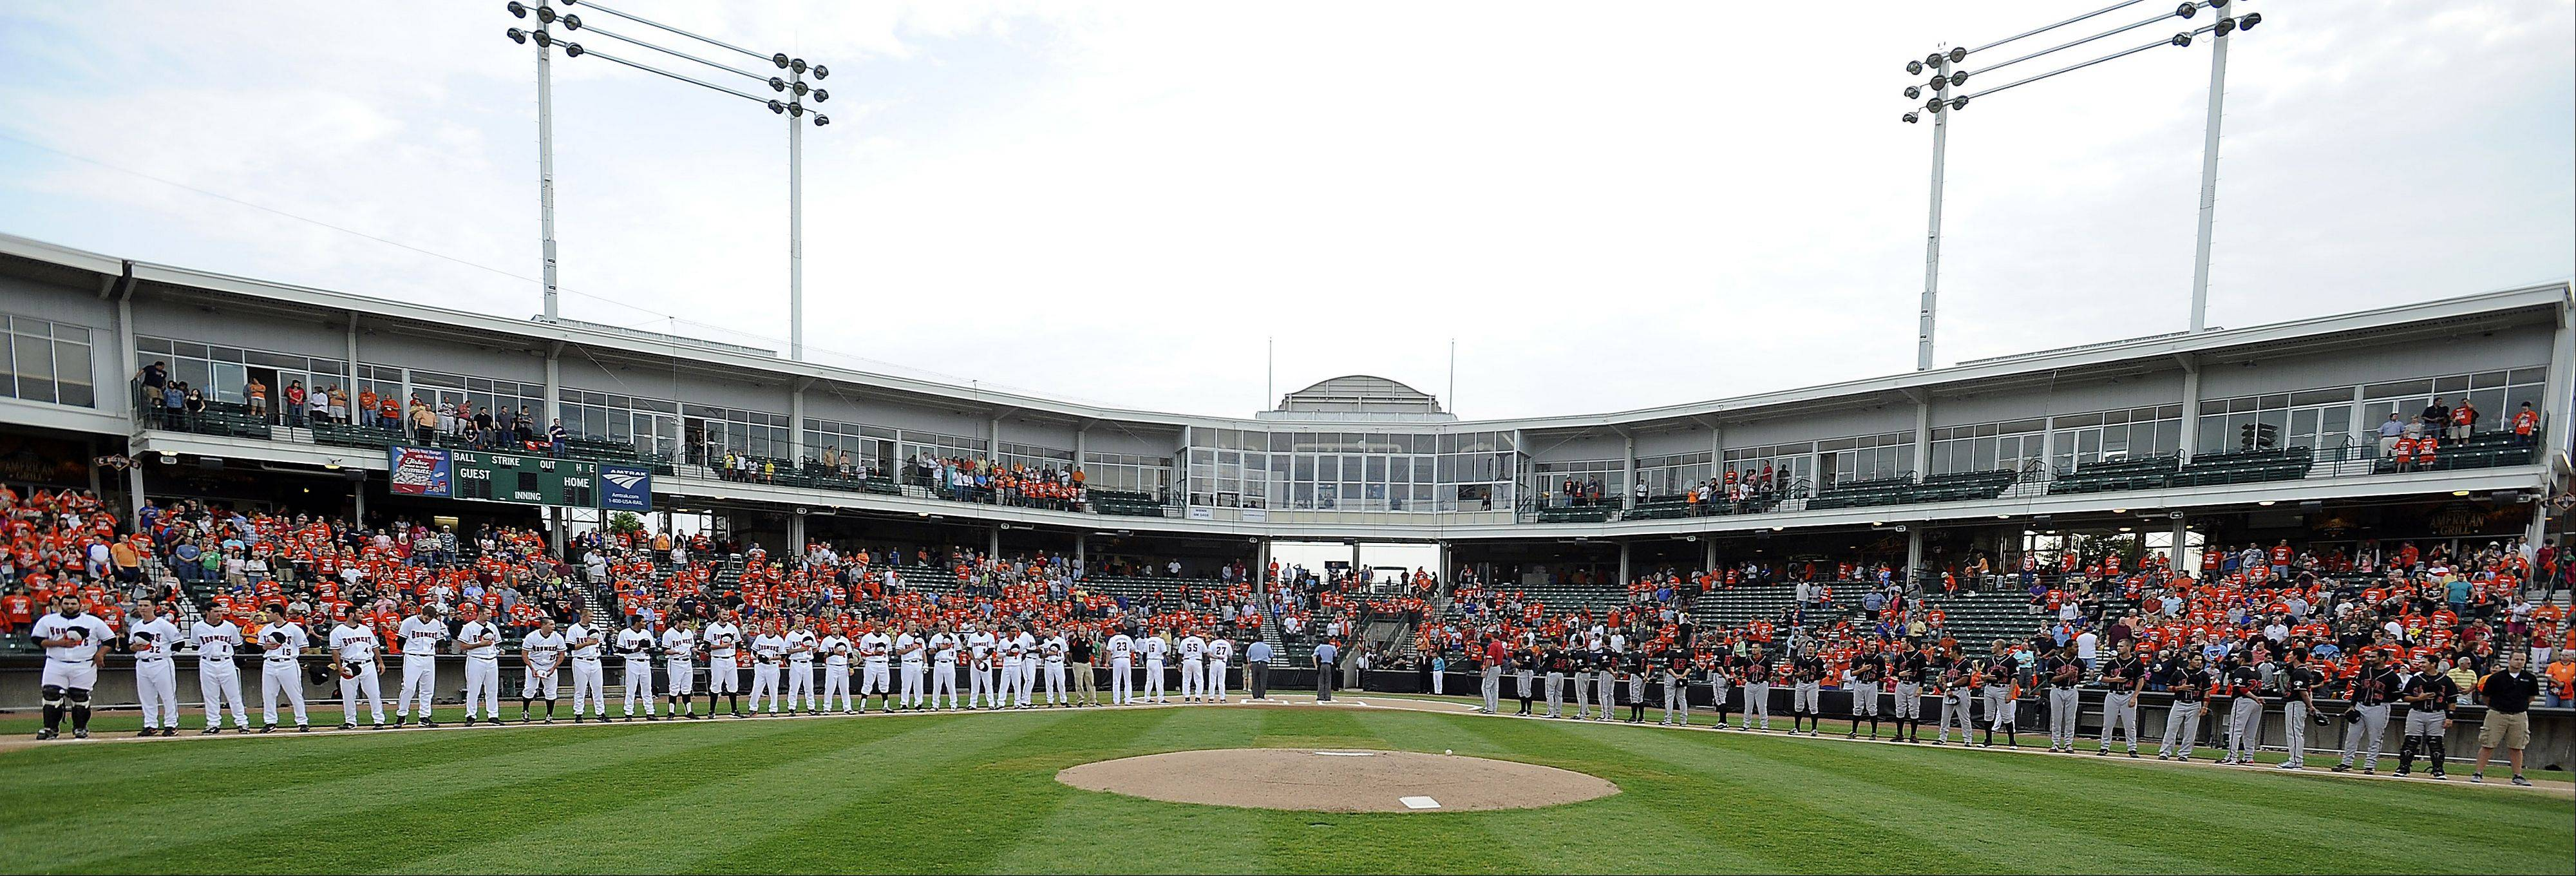 The Schaumburg Boomers are among the draws for tourists to the area.